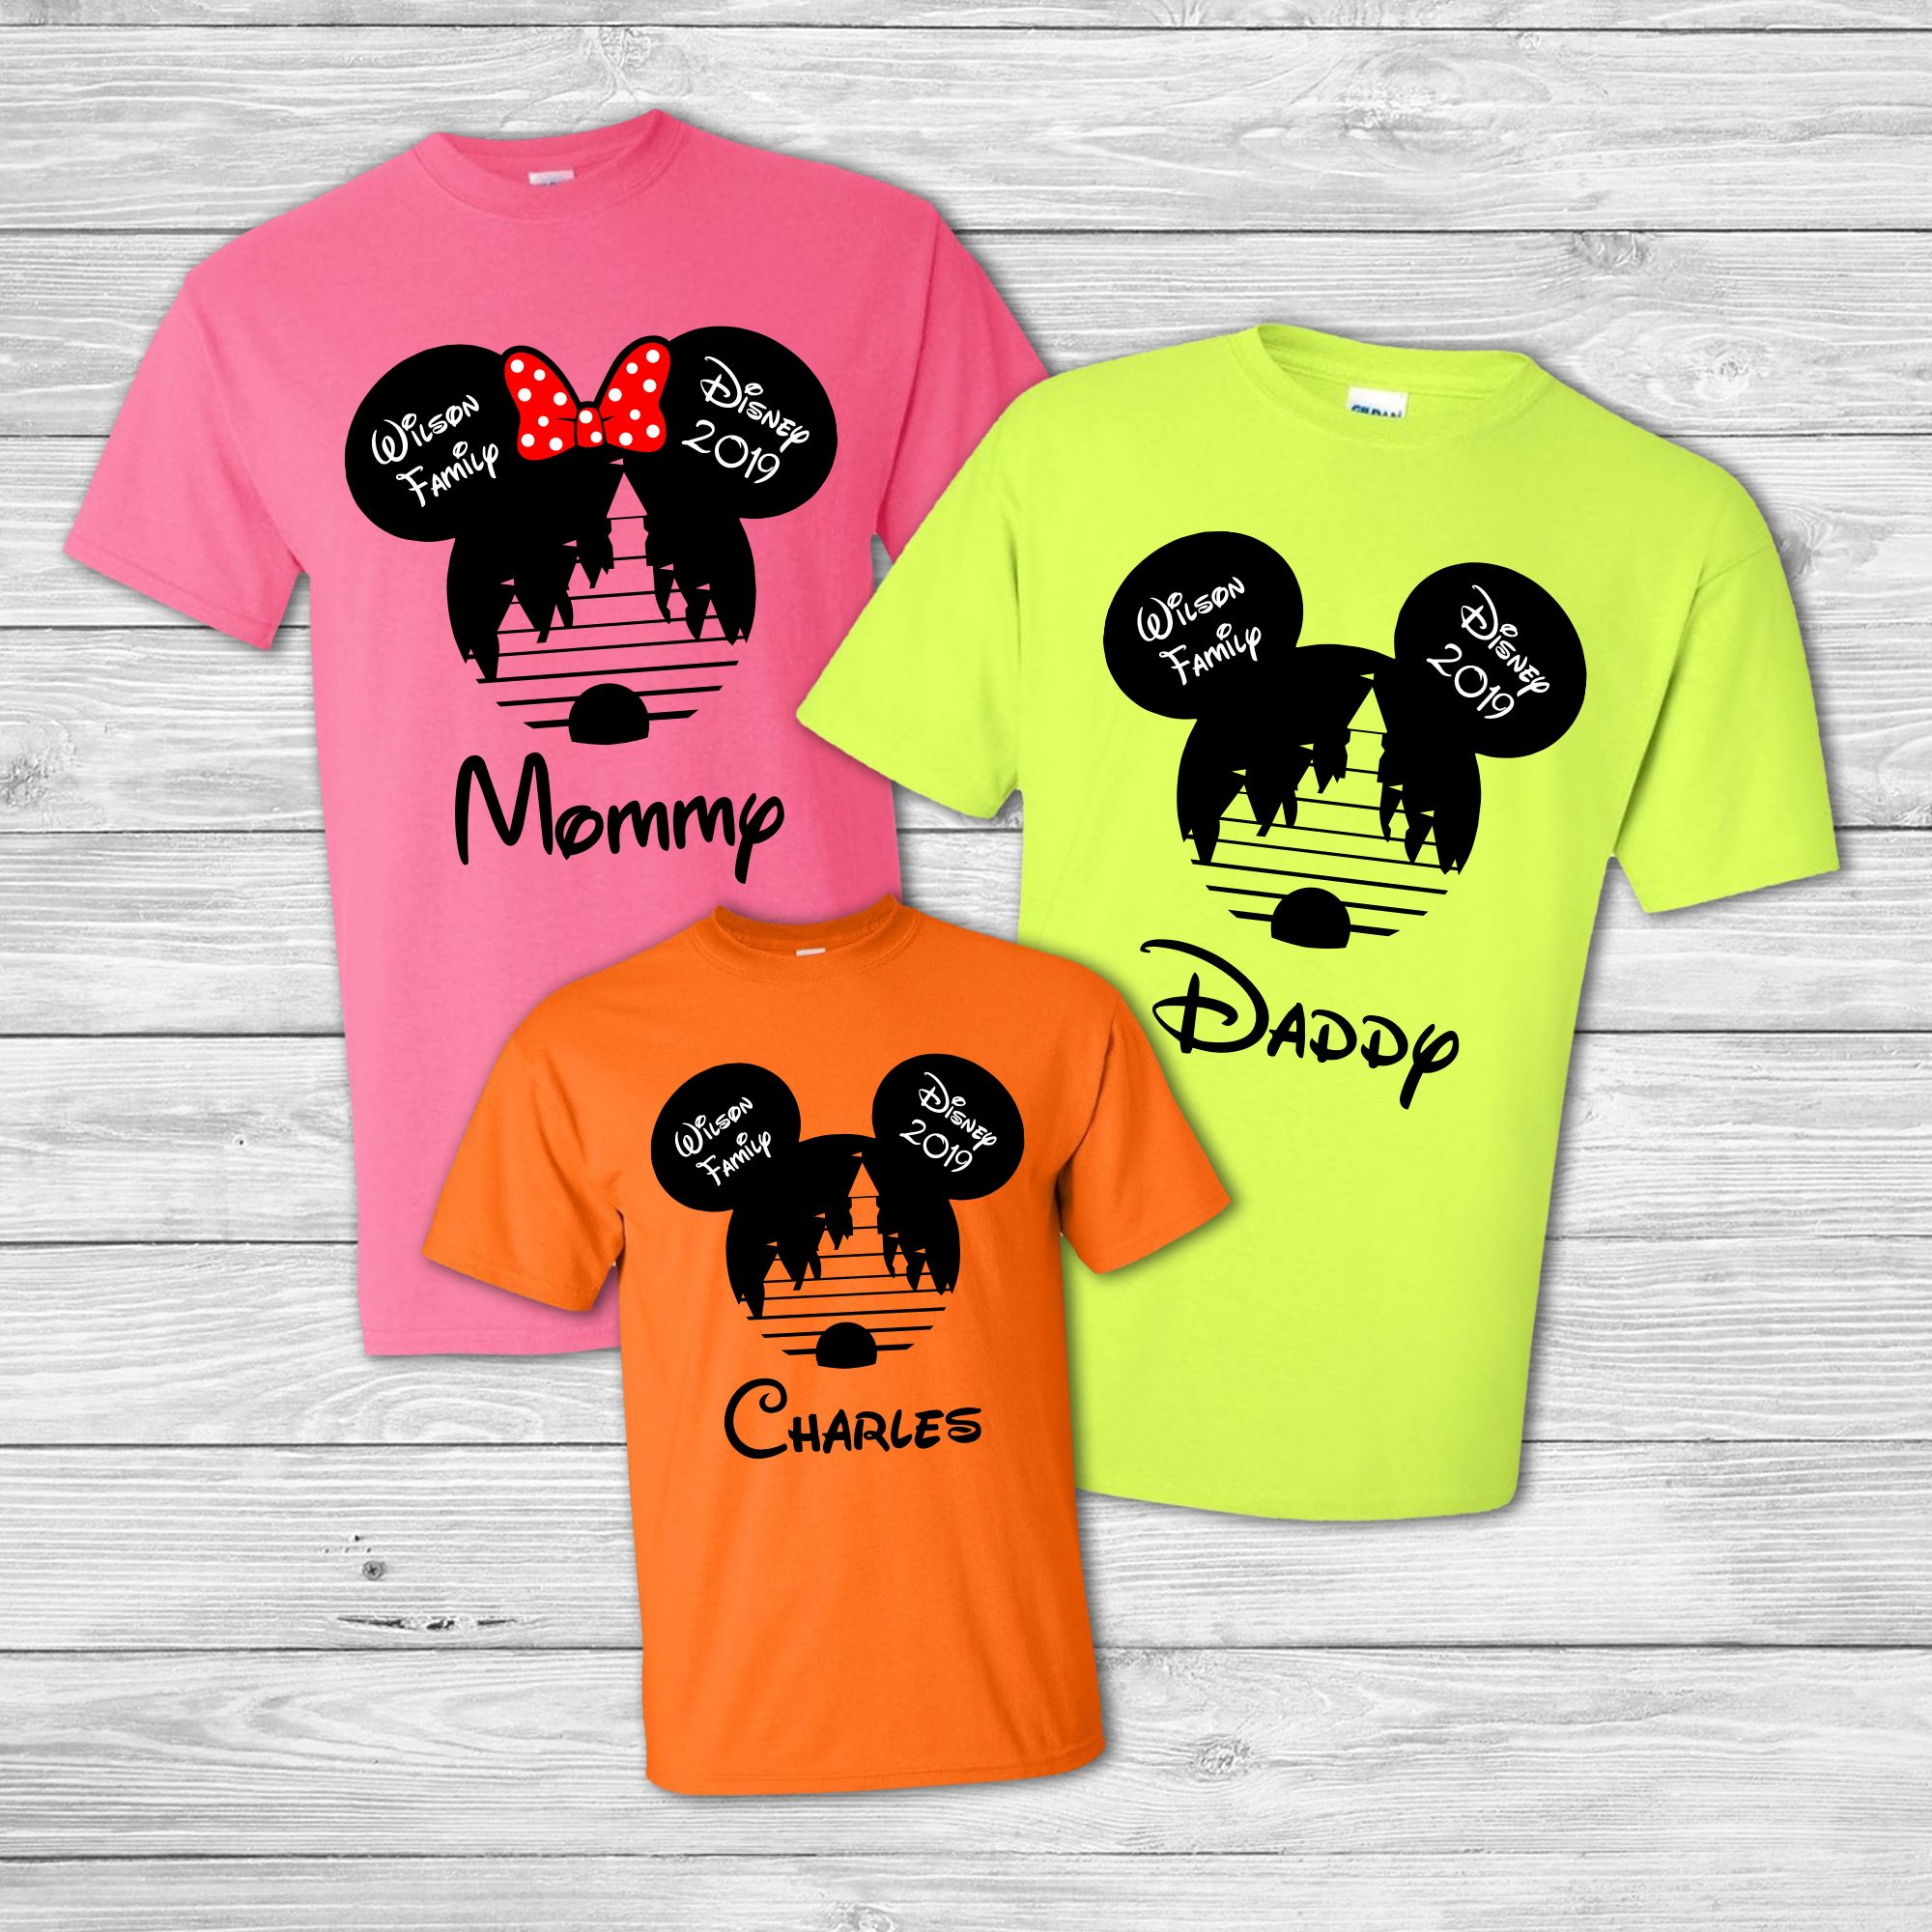 7466d9ad10298 Neon Couples Shirts - Family Vacation Disneyland Shirts in 2019 ...